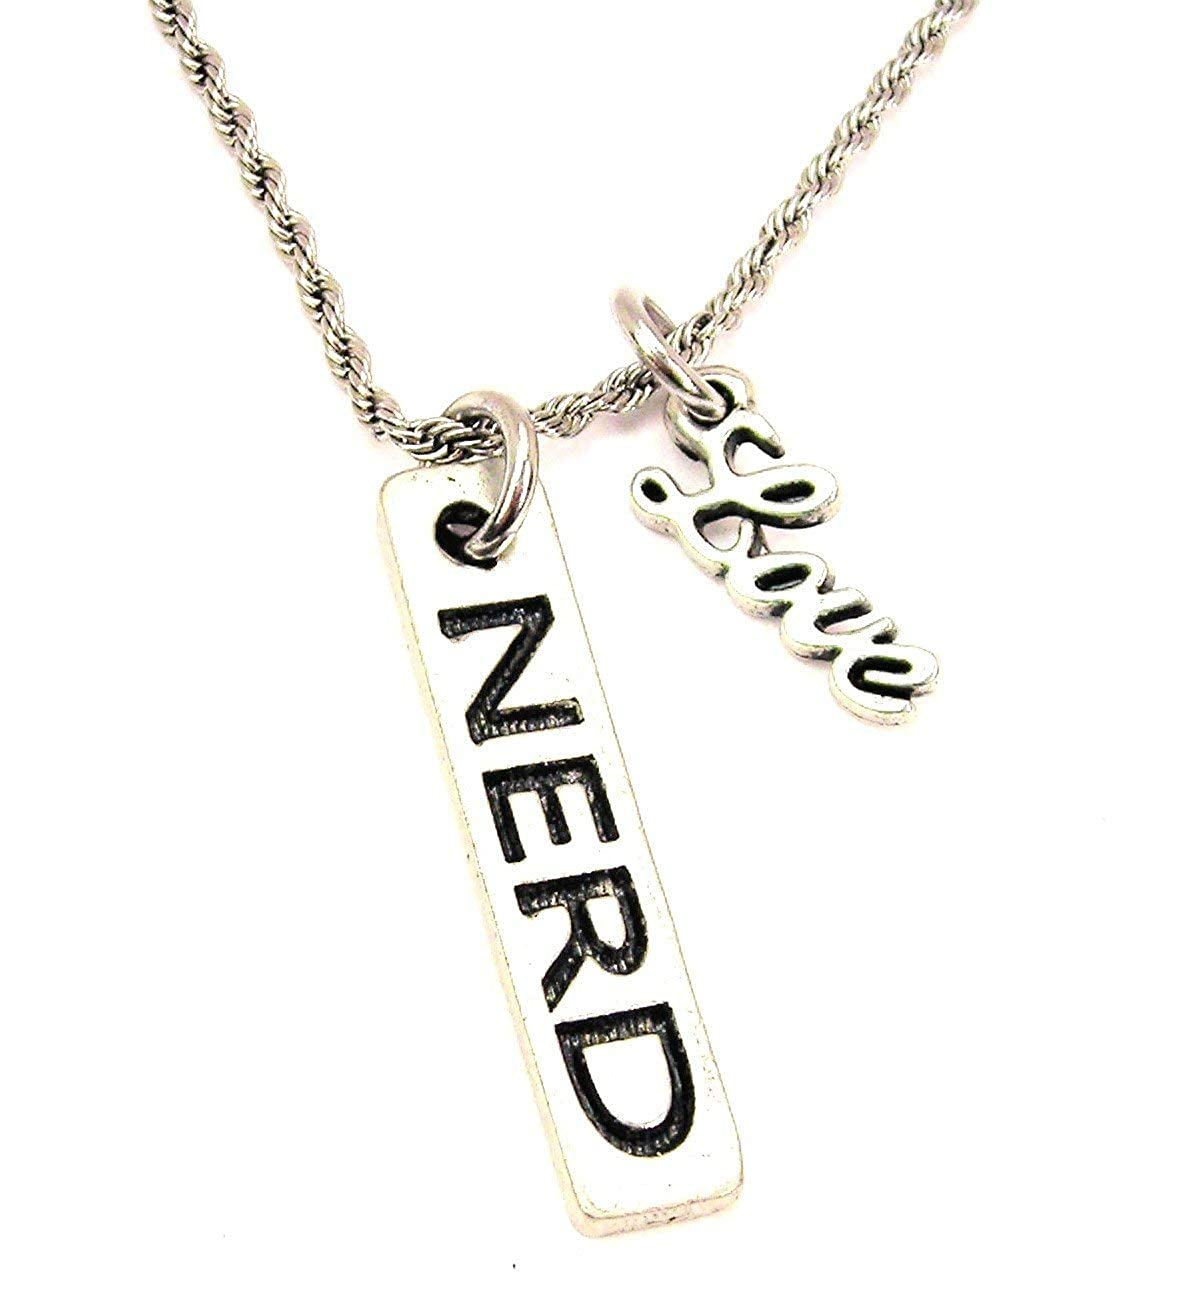 ChubbyChicoCharms Nerd Stainless Steel Rope Chain Necklace with Cursive Love Accent